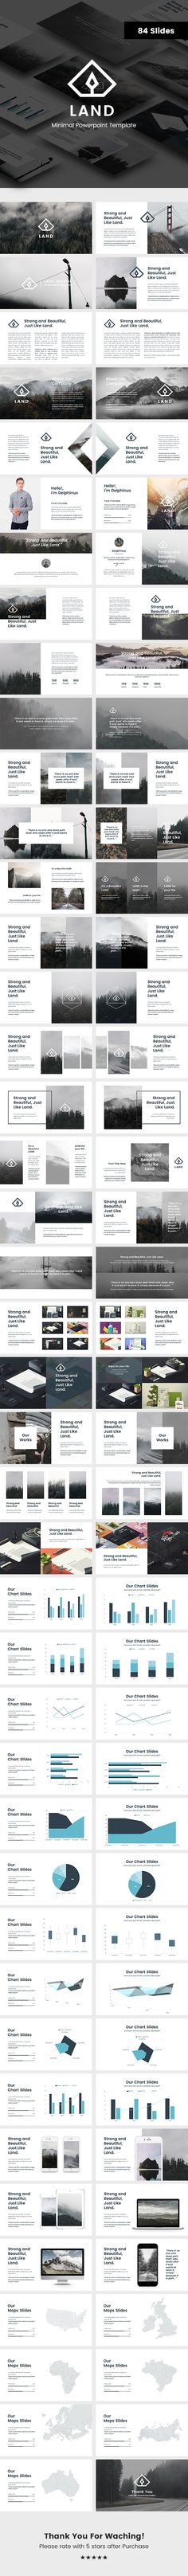 accord - business presentation | business presentation, business, Presentation templates